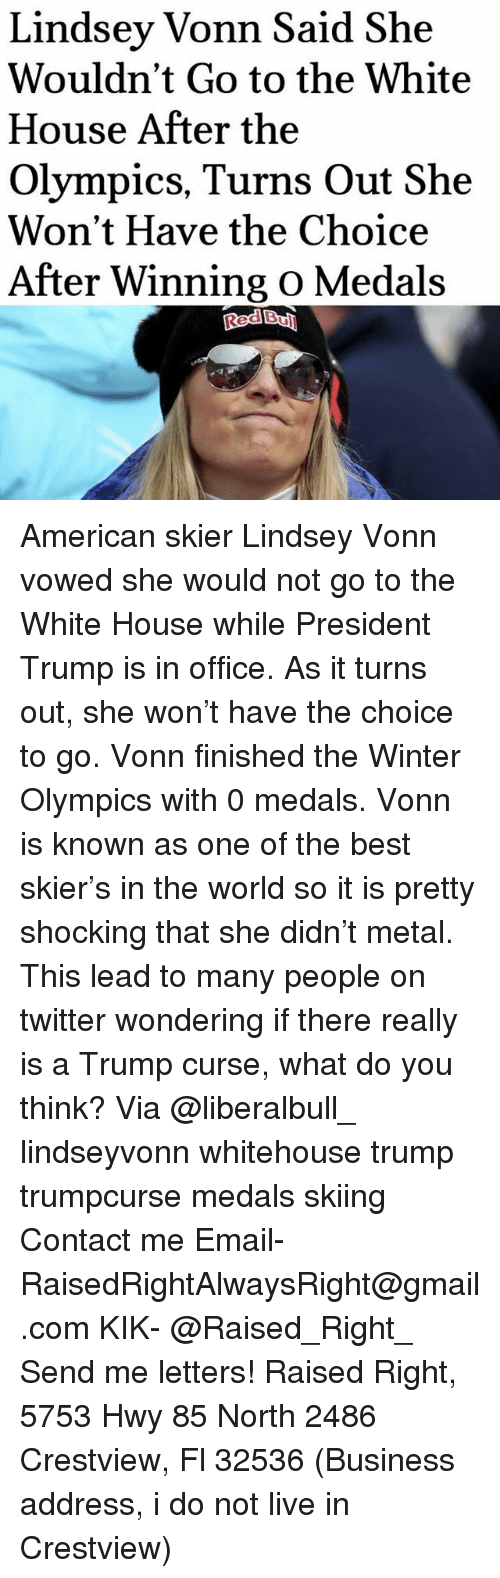 Memes, Red Bull, and Twitter: Lindsey Vonn Said She  Wouldn't Go to the White  House After the  Olympics, Turns Out She  Won't Have the Choice  After Winning o Medals  Red Bull American skier Lindsey Vonn vowed she would not go to the White House while President Trump is in office. As it turns out, she won't have the choice to go. Vonn finished the Winter Olympics with 0 medals. Vonn is known as one of the best skier's in the world so it is pretty shocking that she didn't metal. This lead to many people on twitter wondering if there really is a Trump curse, what do you think? Via @liberalbull_ lindseyvonn whitehouse trump trumpcurse medals skiing Contact me ●Email- RaisedRightAlwaysRight@gmail.com ●KIK- @Raised_Right_ ●Send me letters! Raised Right, 5753 Hwy 85 North 2486 Crestview, Fl 32536 (Business address, i do not live in Crestview)